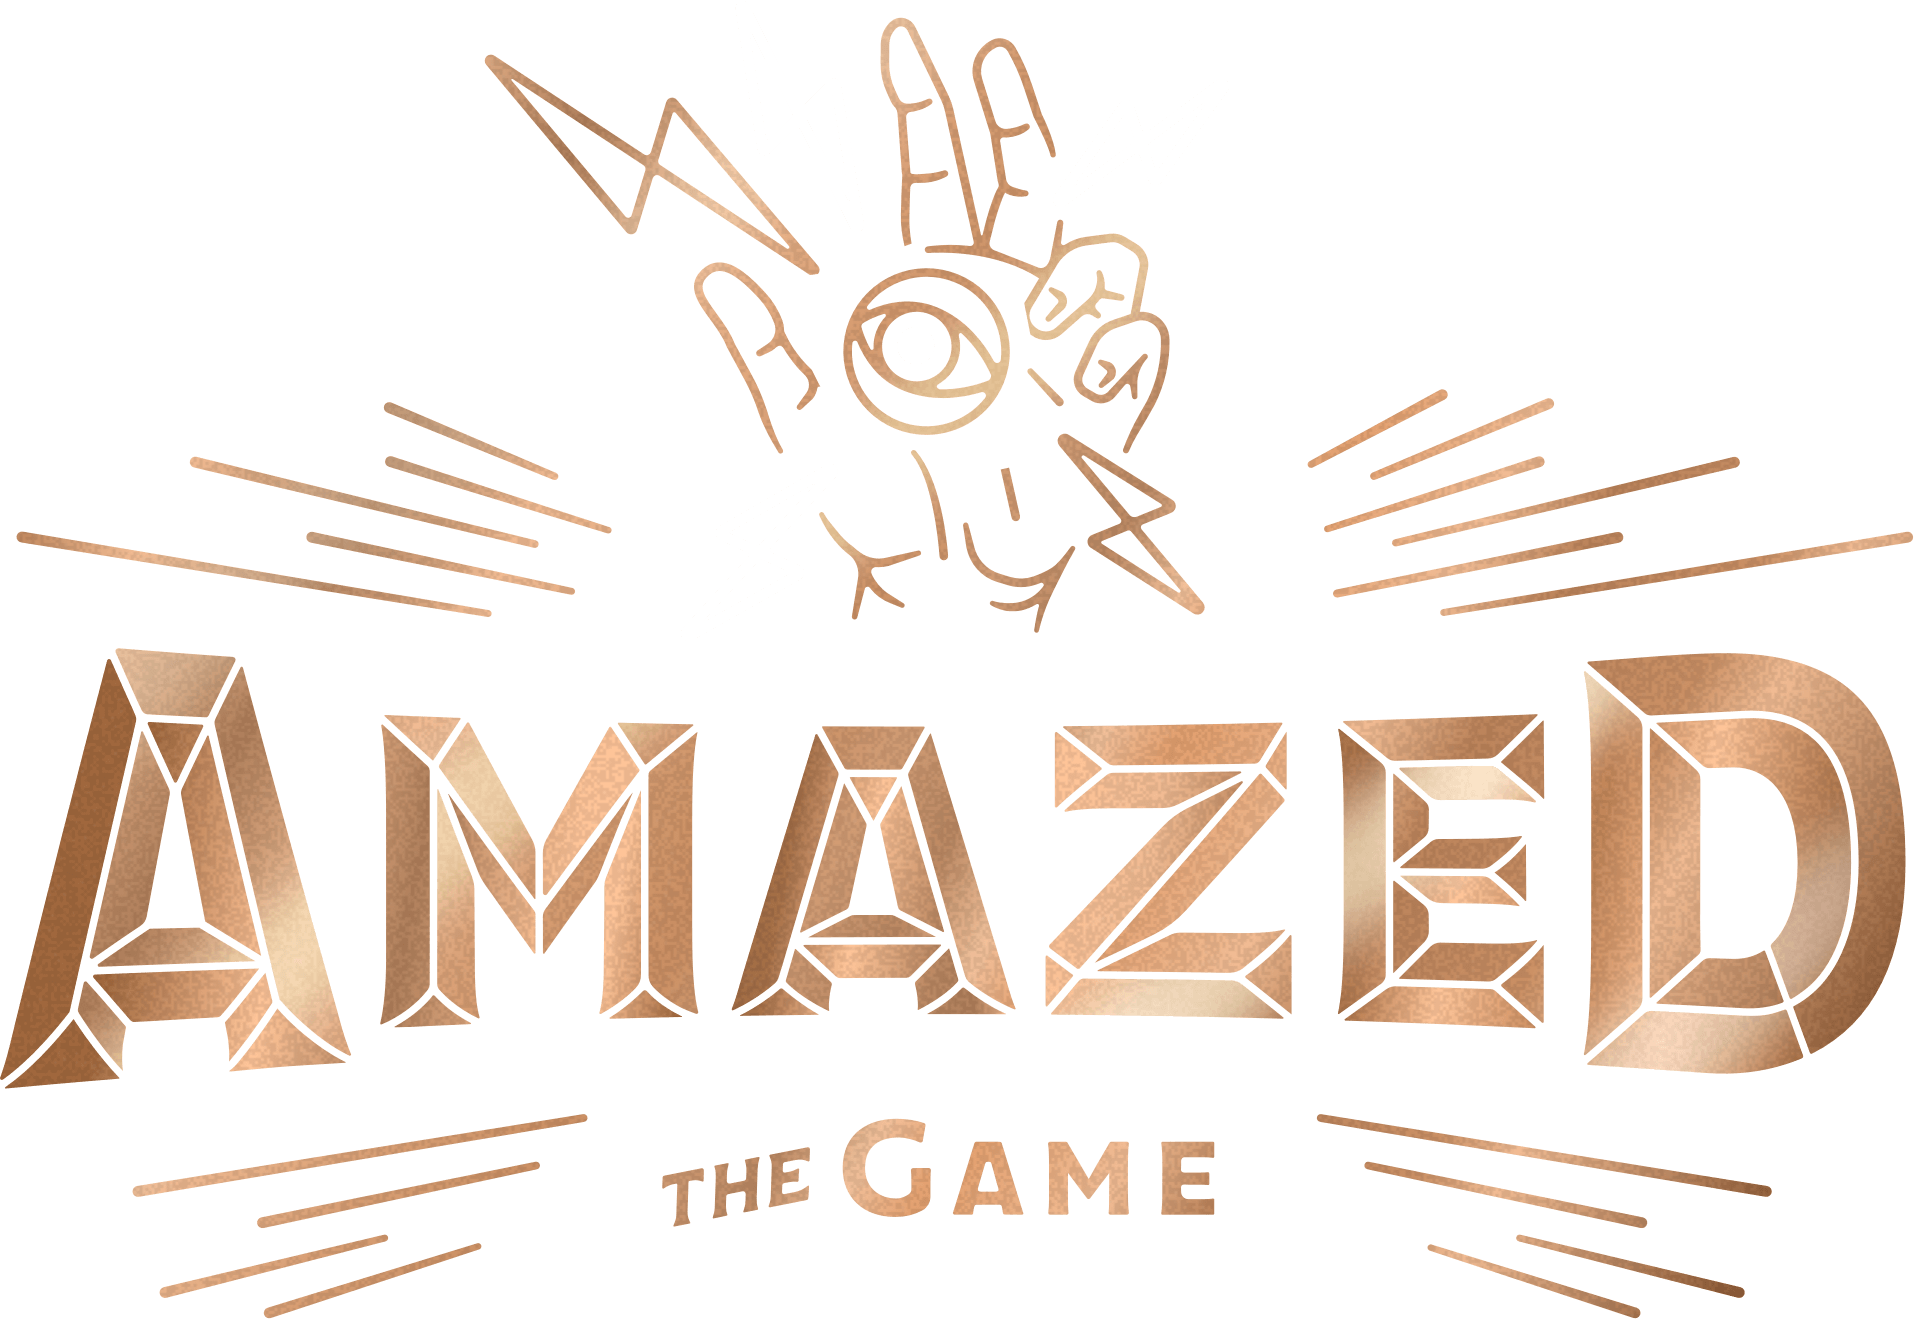 Amazed the Game